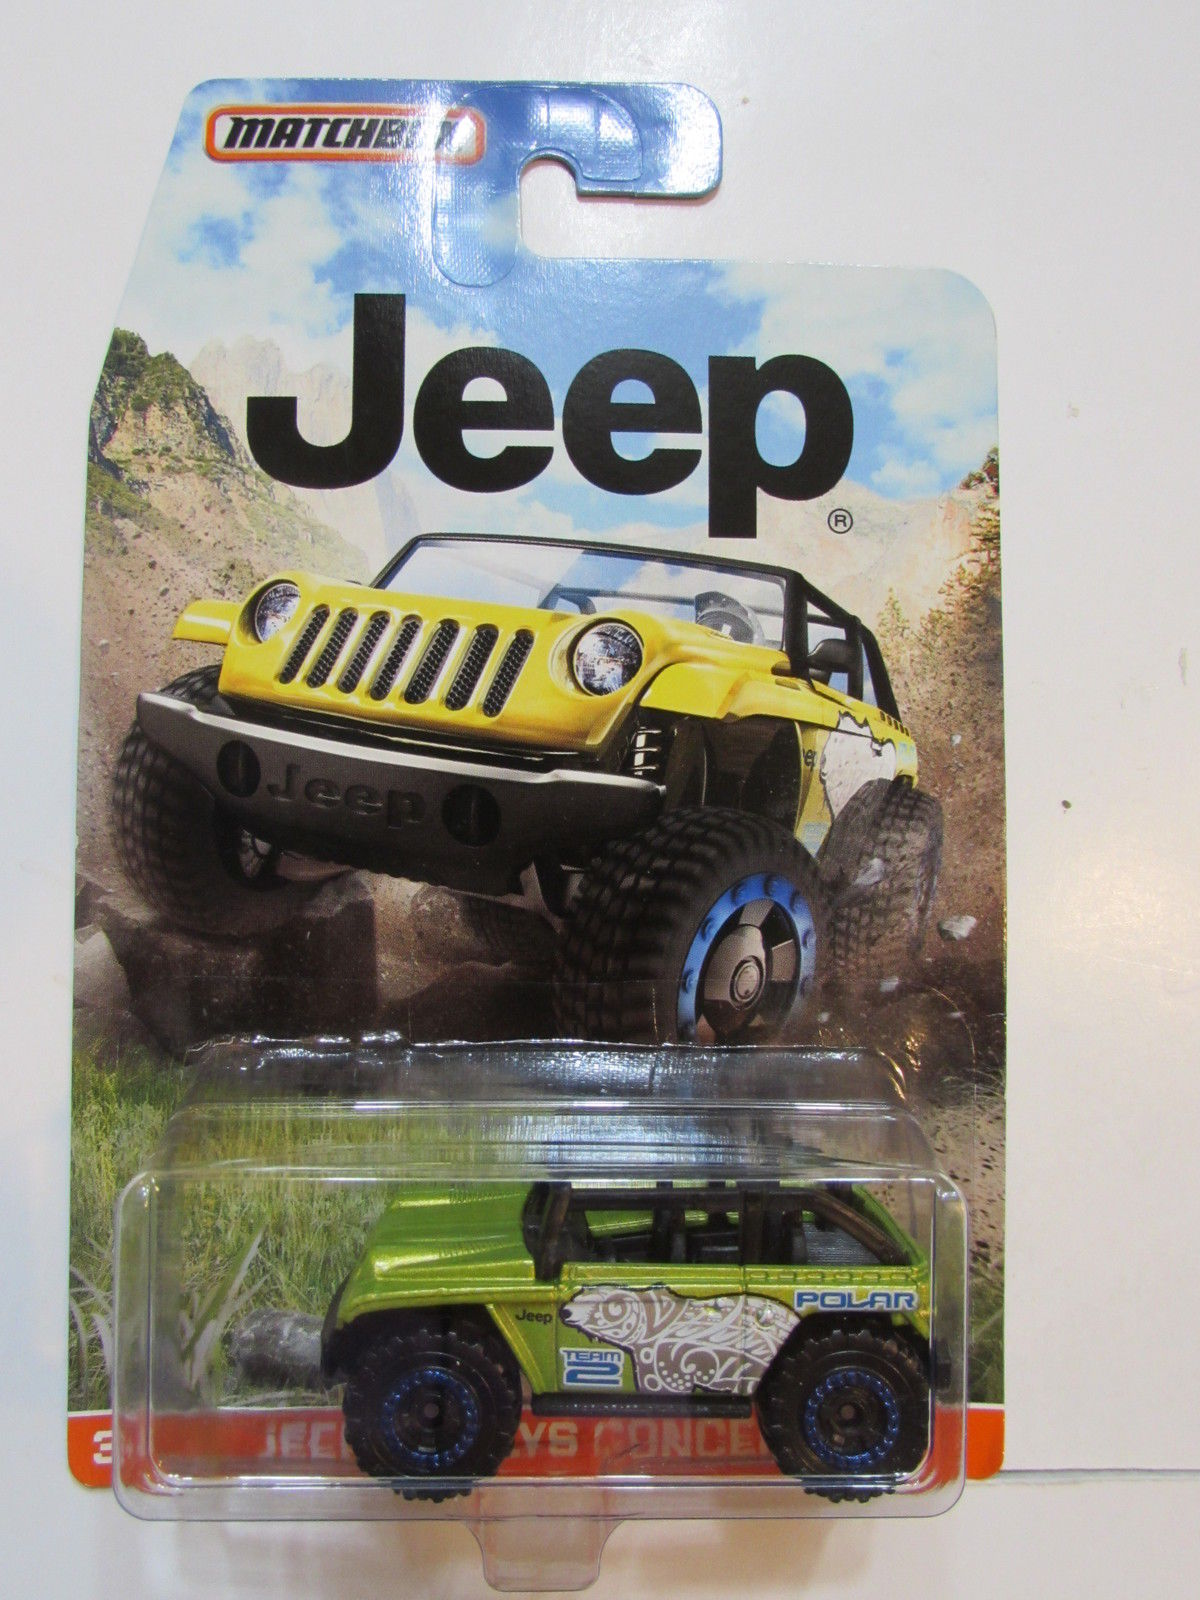 MATCHBOX 2015 JEEP WILLYS CONCEPT